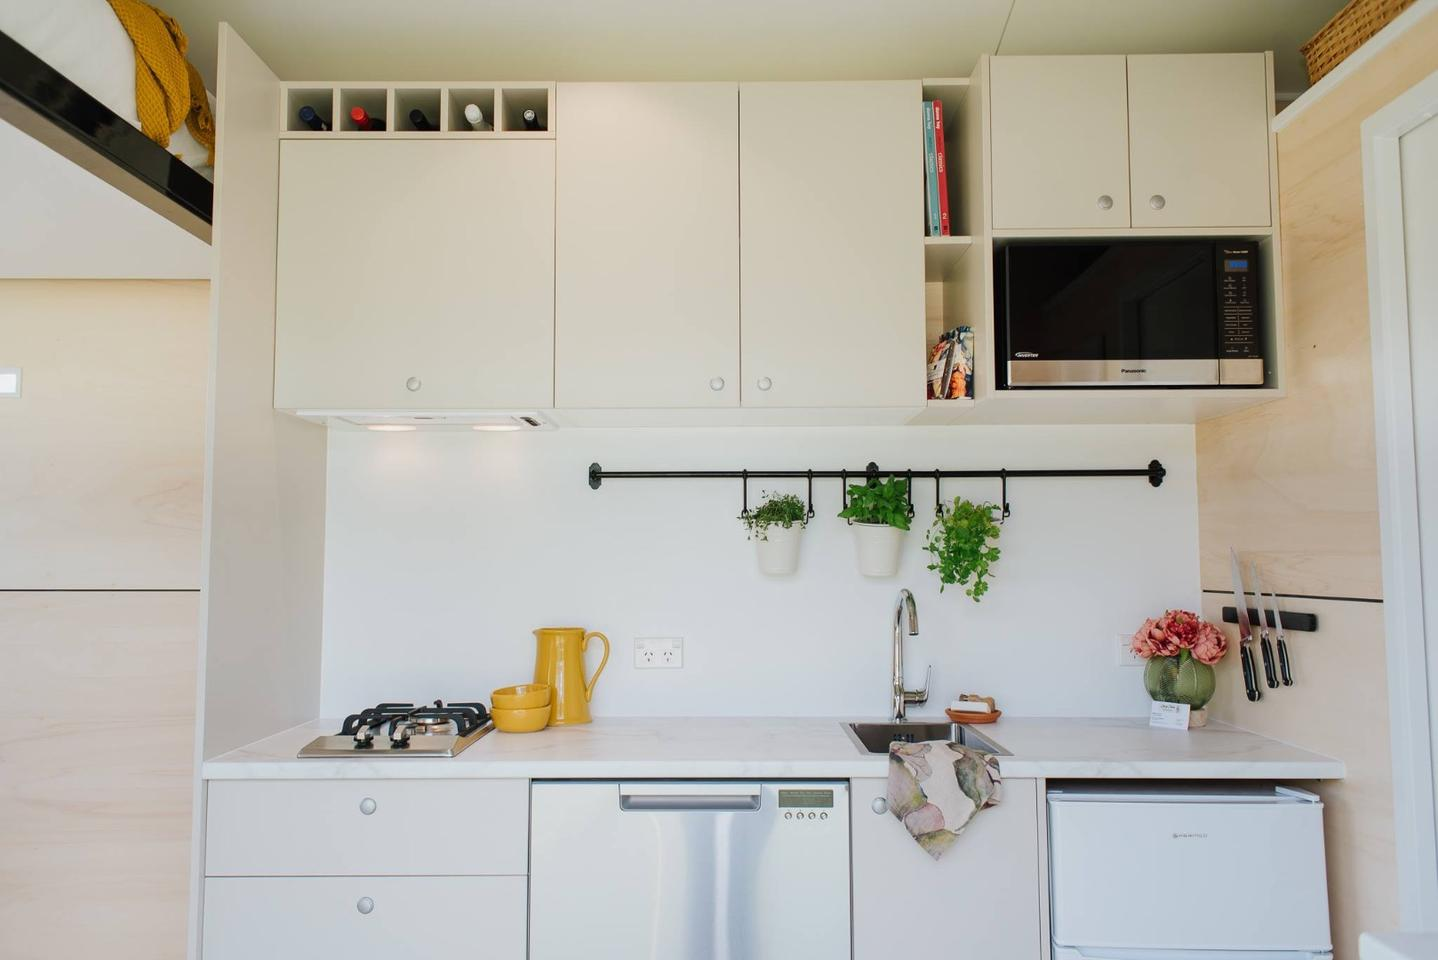 Visitors enter the Camper Tiny House into its kitchen area